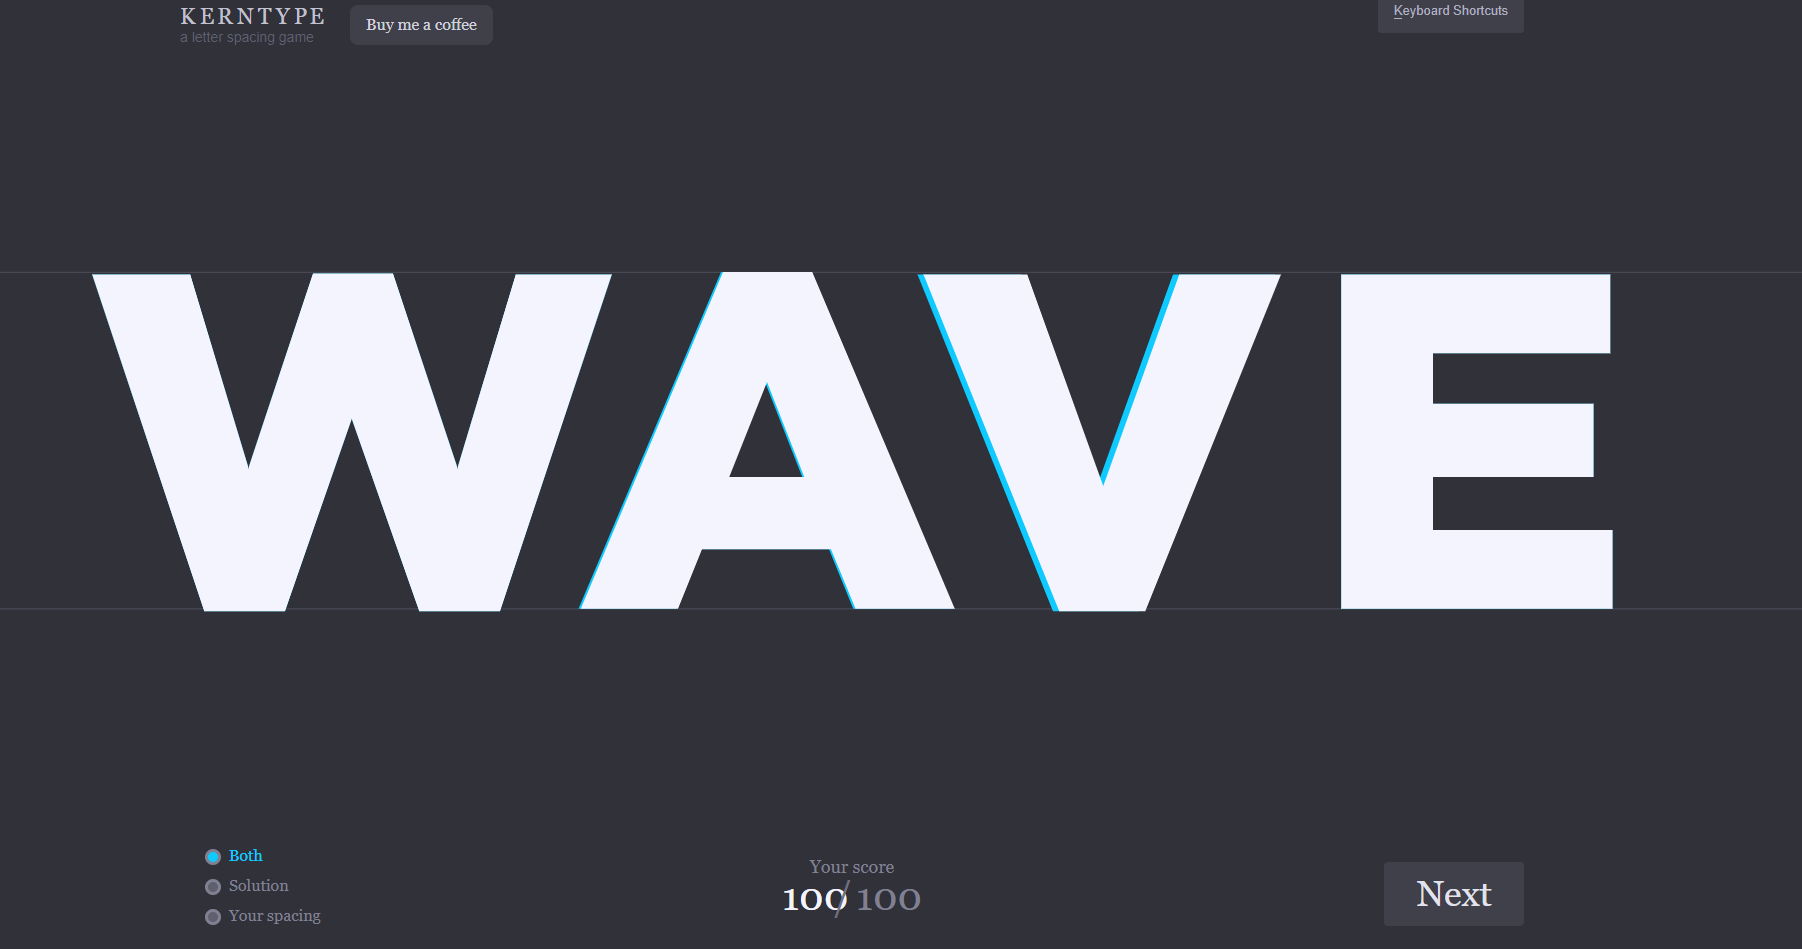 Practice your kerning with this game